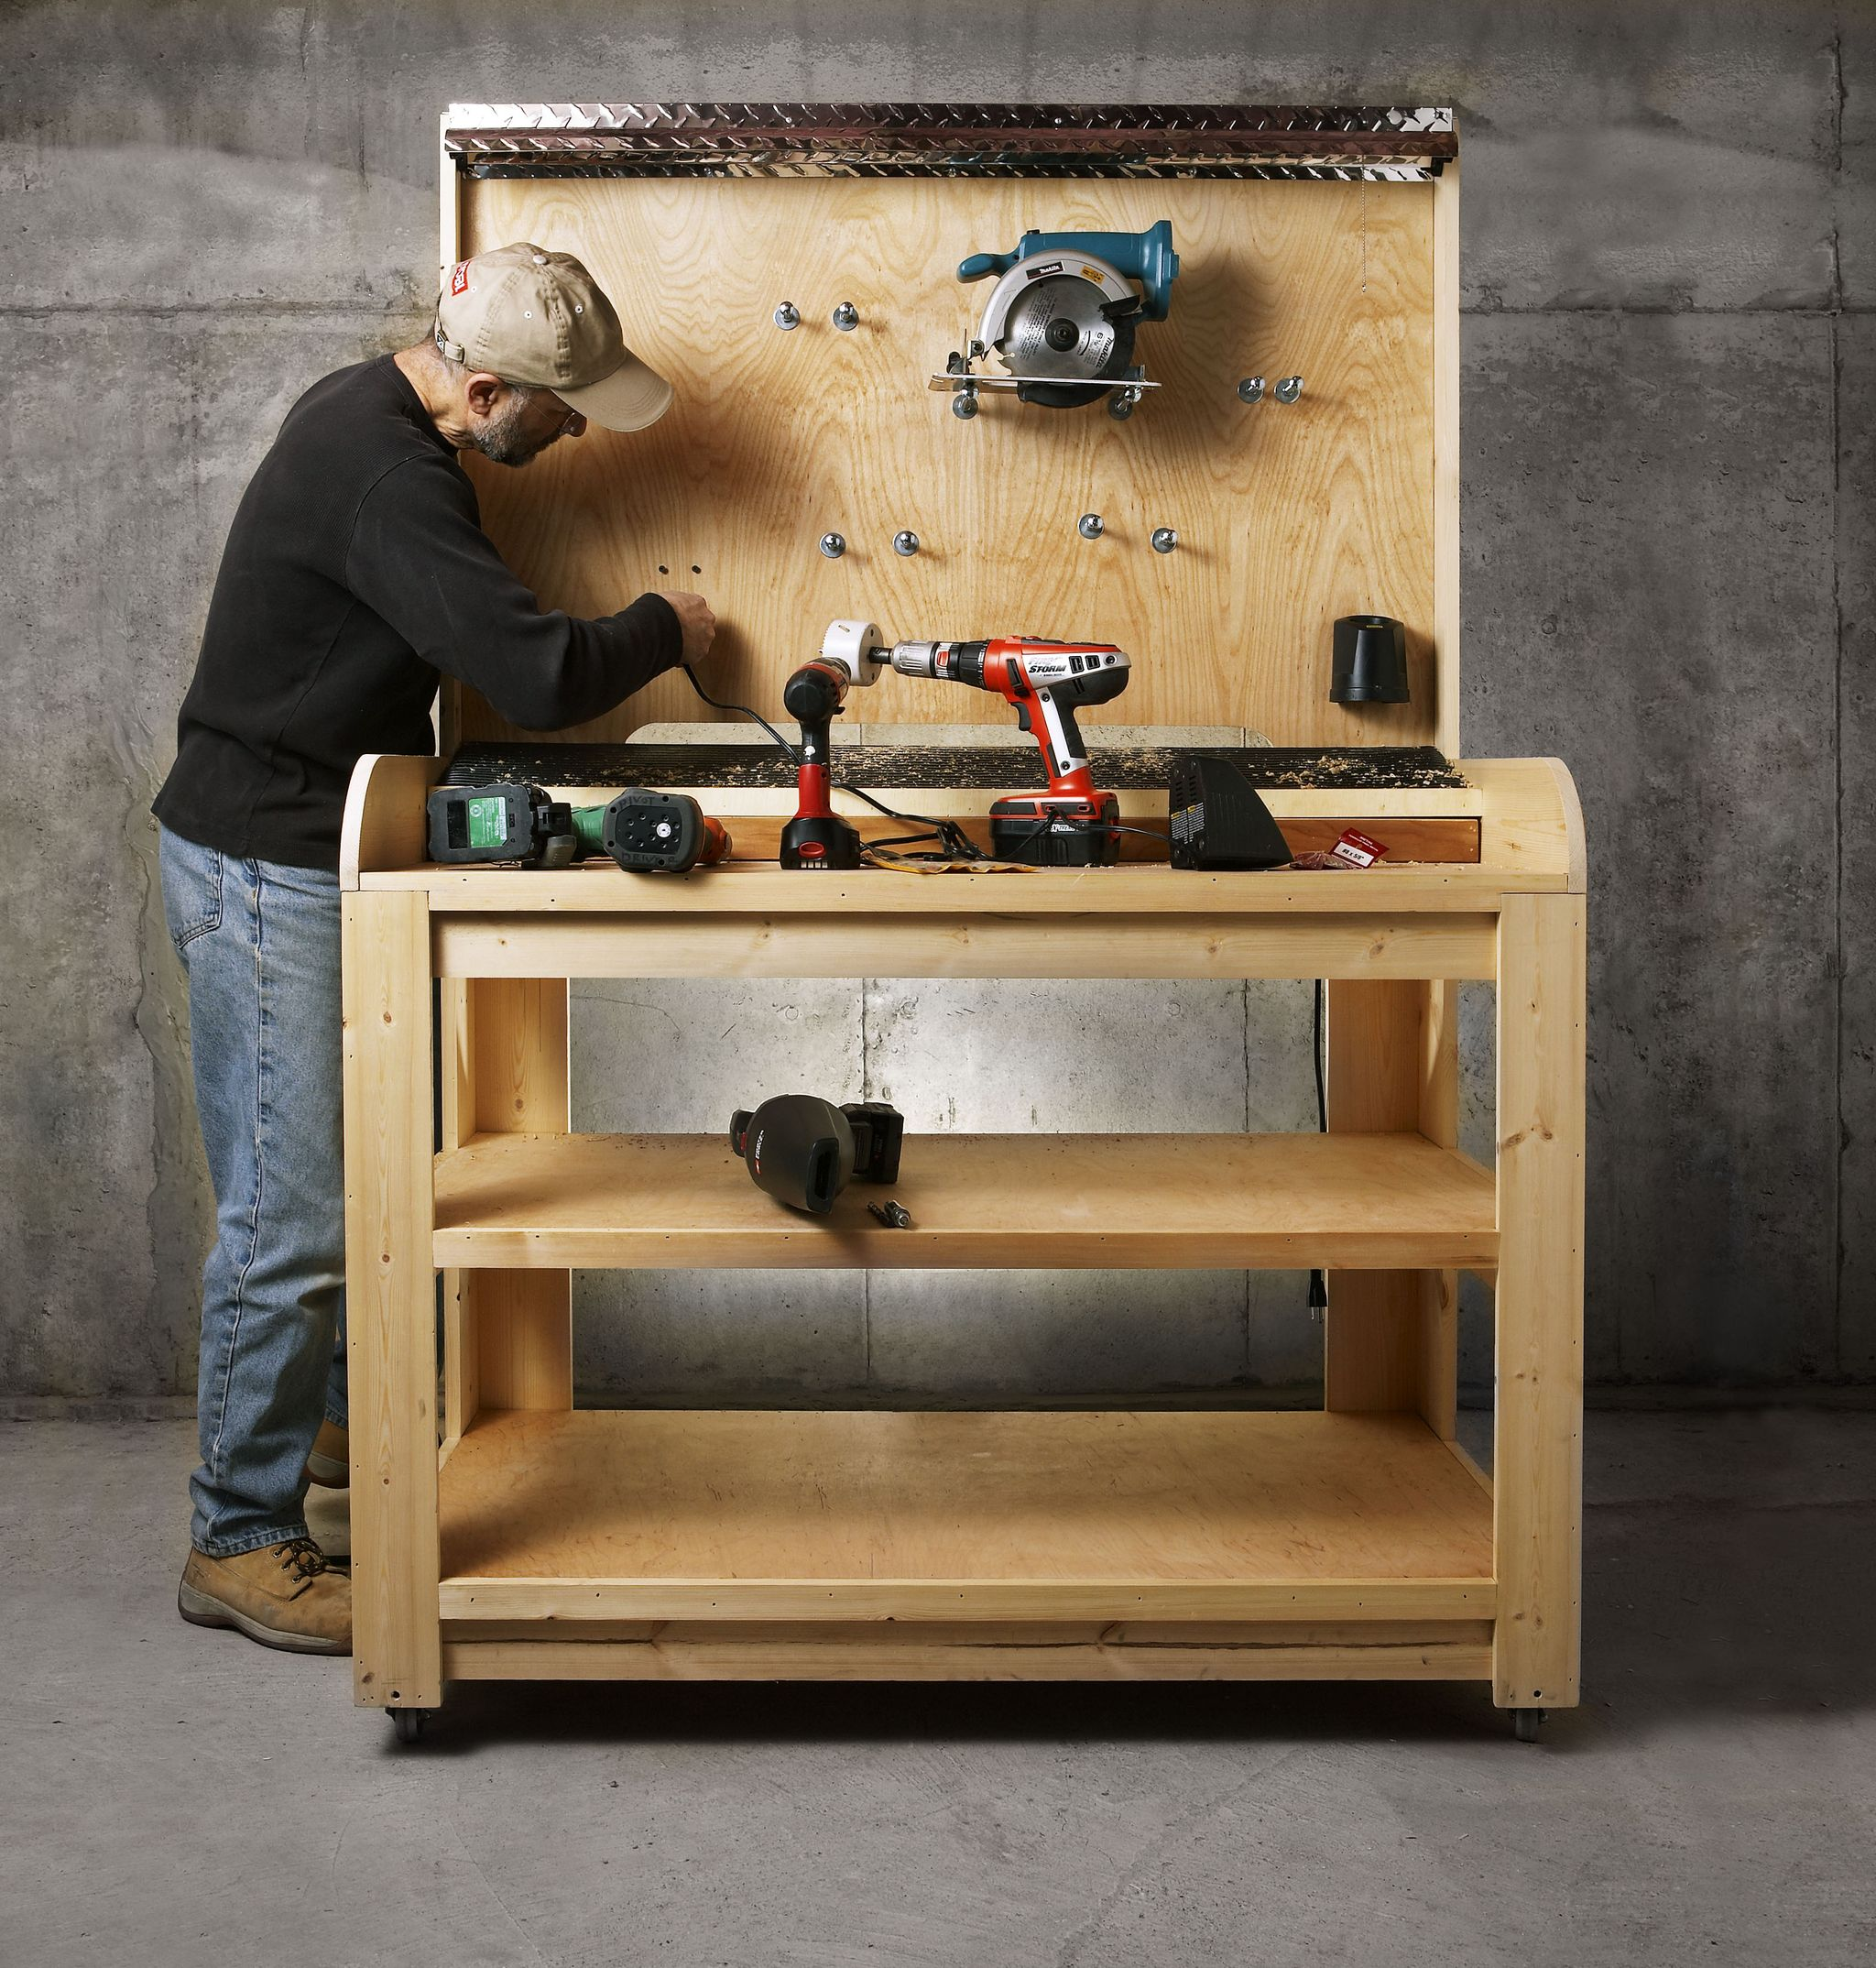 Running Out of Juice? Time To Build a Workshop Charging Station